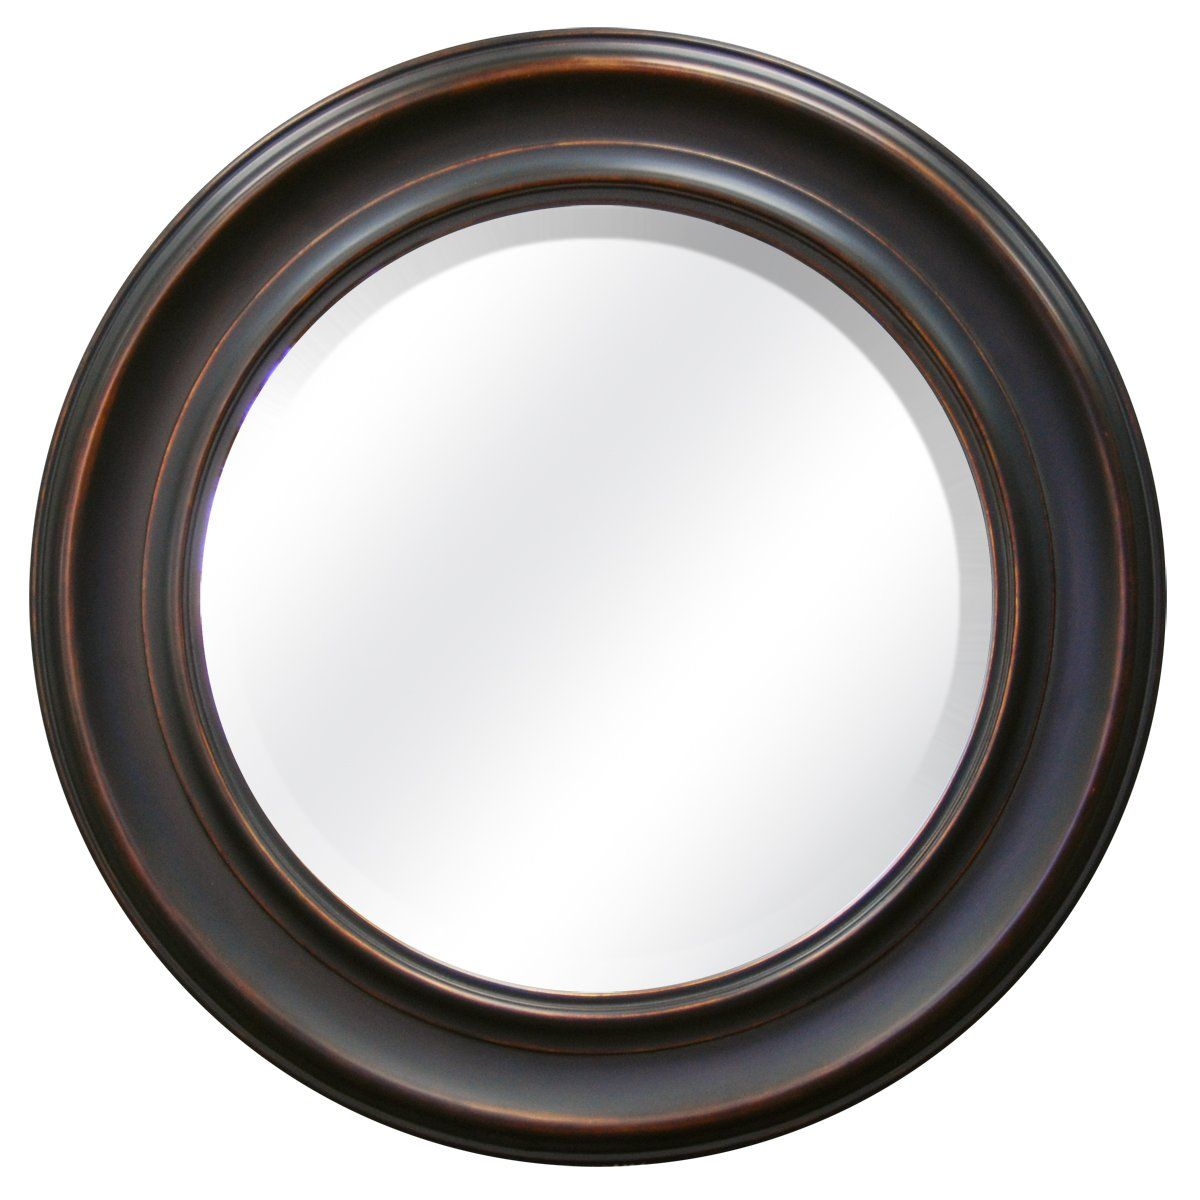 55 Mcs 26 Inch Round Mirror Frame With 18 5 Beveled Oil Rubbed Bronze